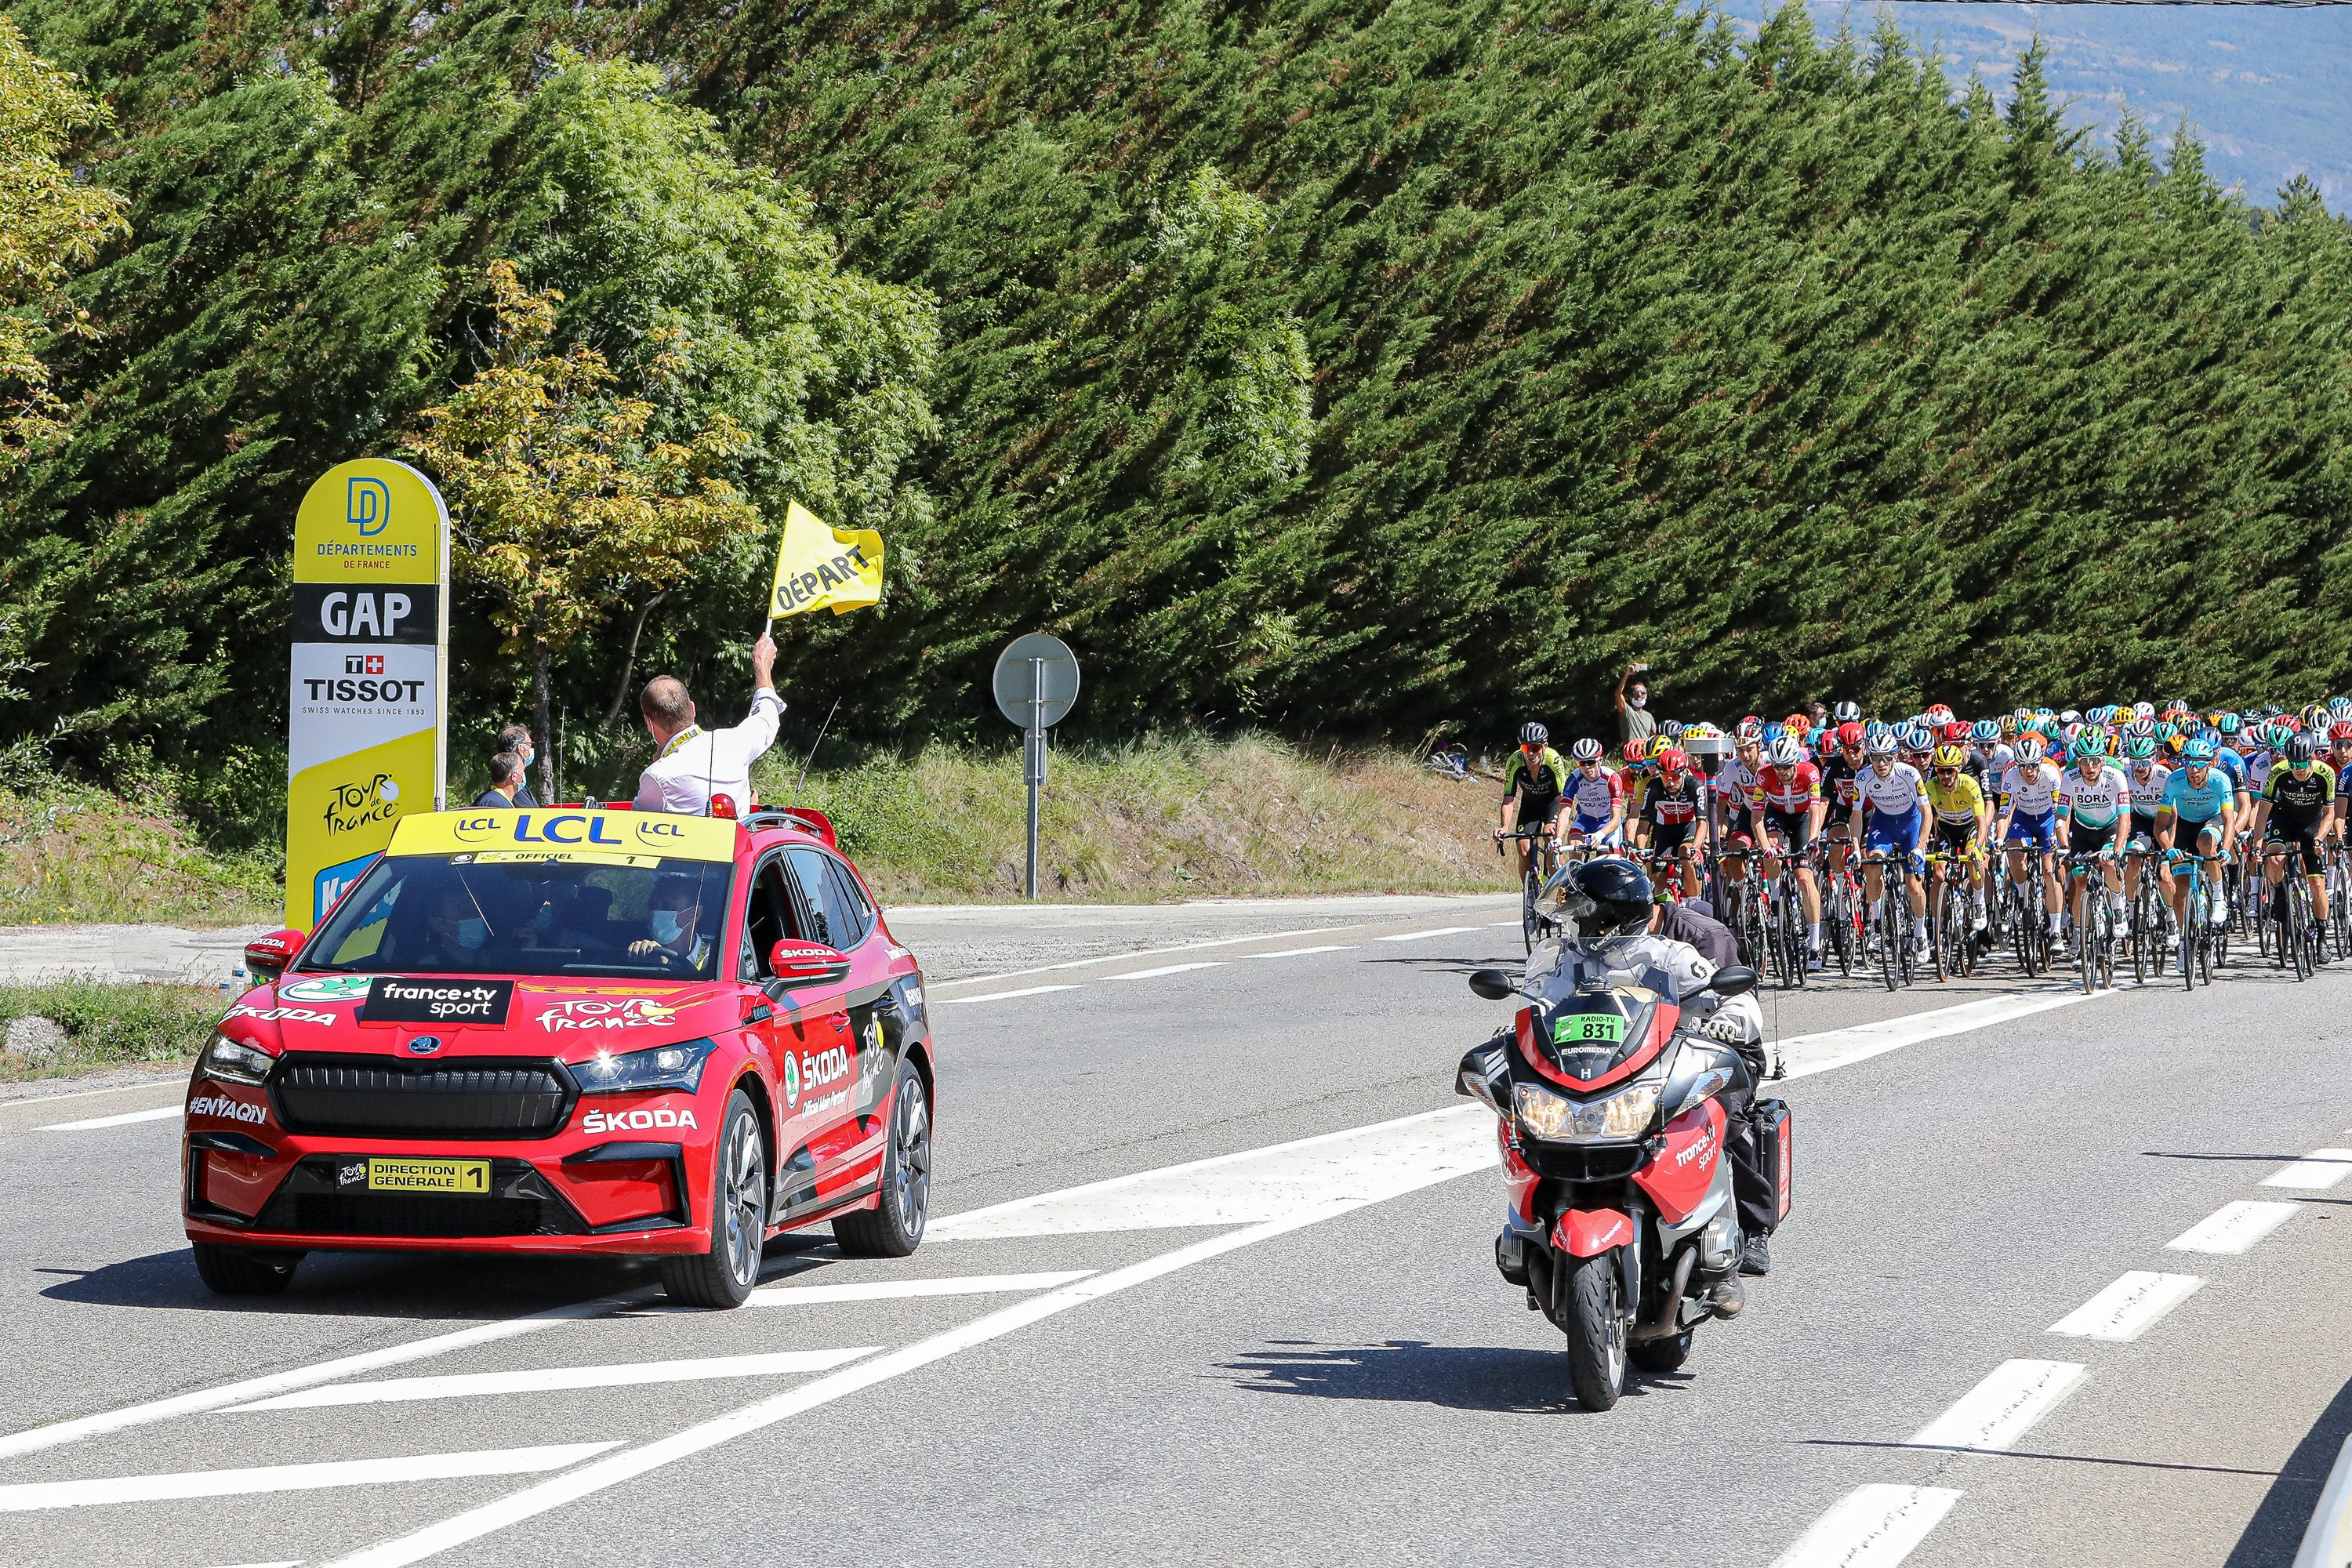 Pictures of the new SKODA ENYAQ iV appearing as the 'Red Car' at the Tour de France - Image 1